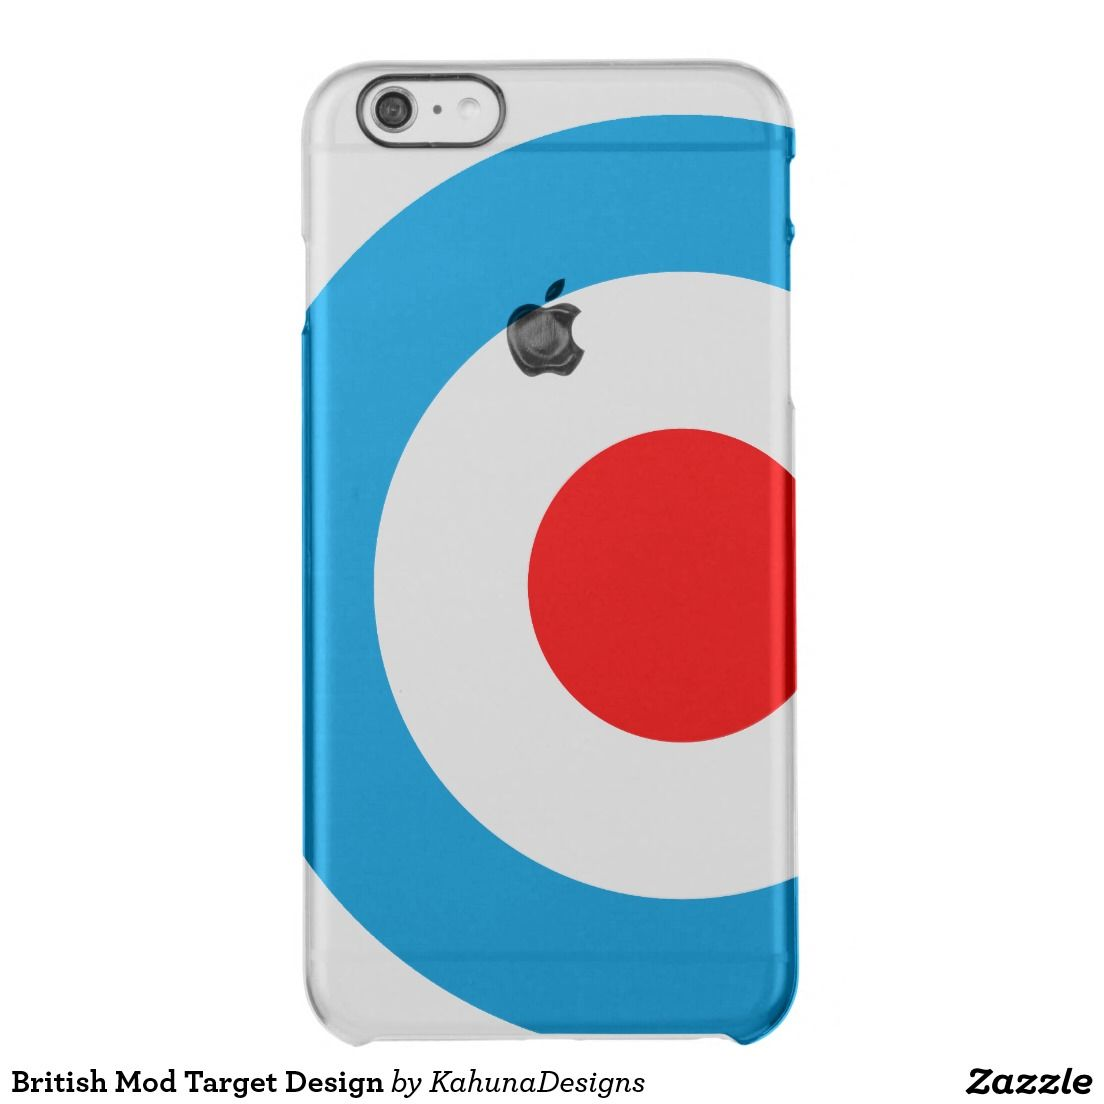 promo code 8dadb 773da British Mod Target Design Clear iPhone 6 Plus Case | Kd iPhone ...